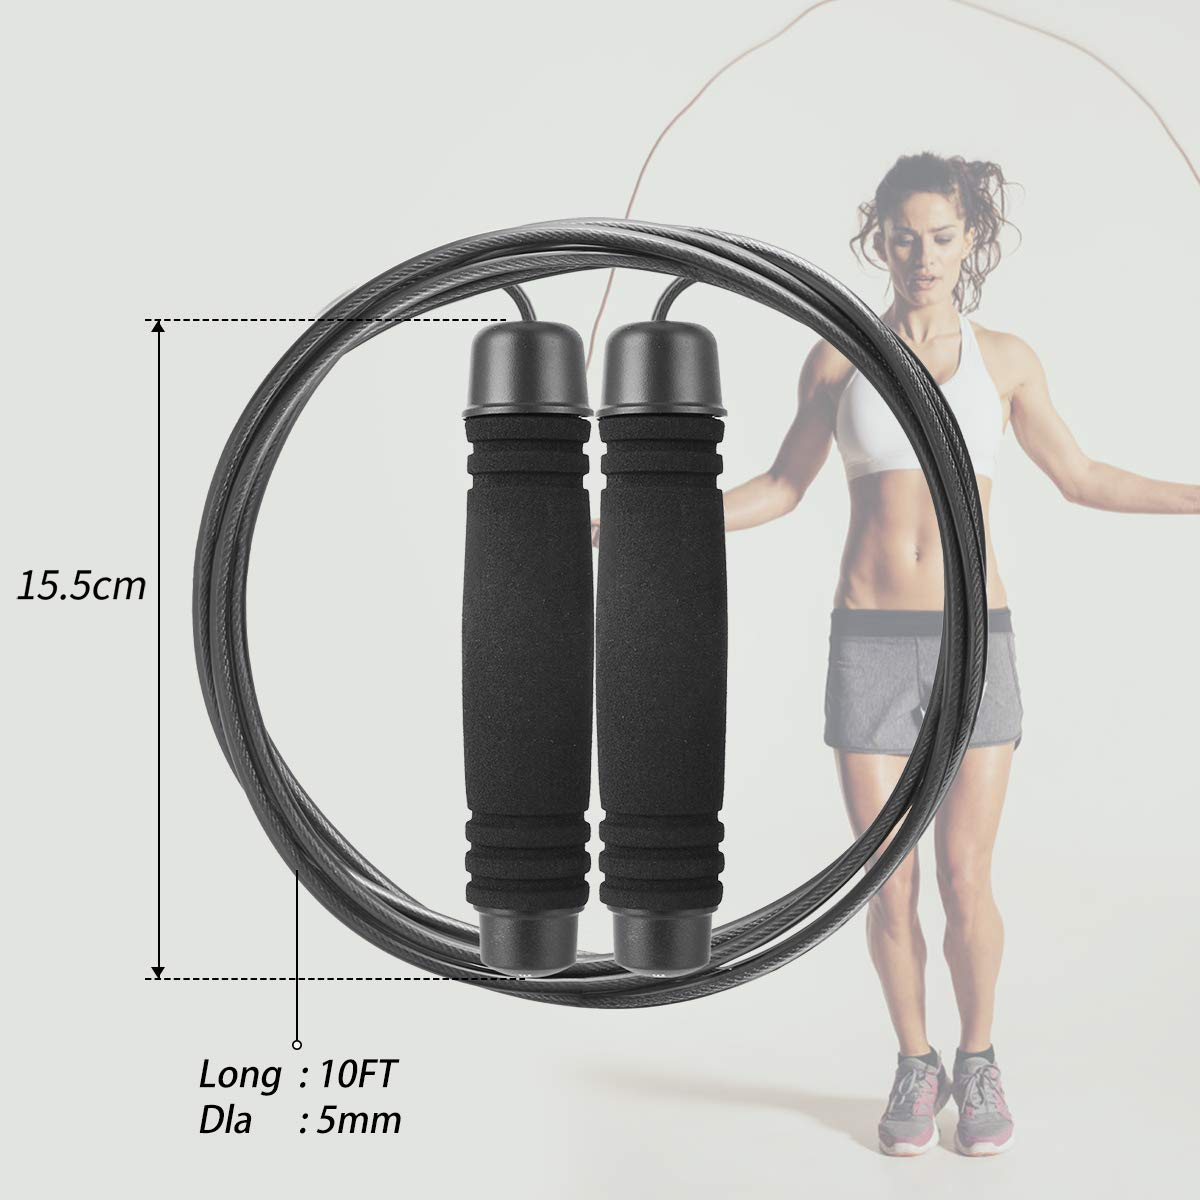 WOD TOBREFE Jump Rope Speed Skipping Rope Tangle-Free Jumping Skip Rope for Men Crossfit MMA /& Boxing Professional Training Fitness Women Outdoor Adult Adjustable to All Heights for Workout